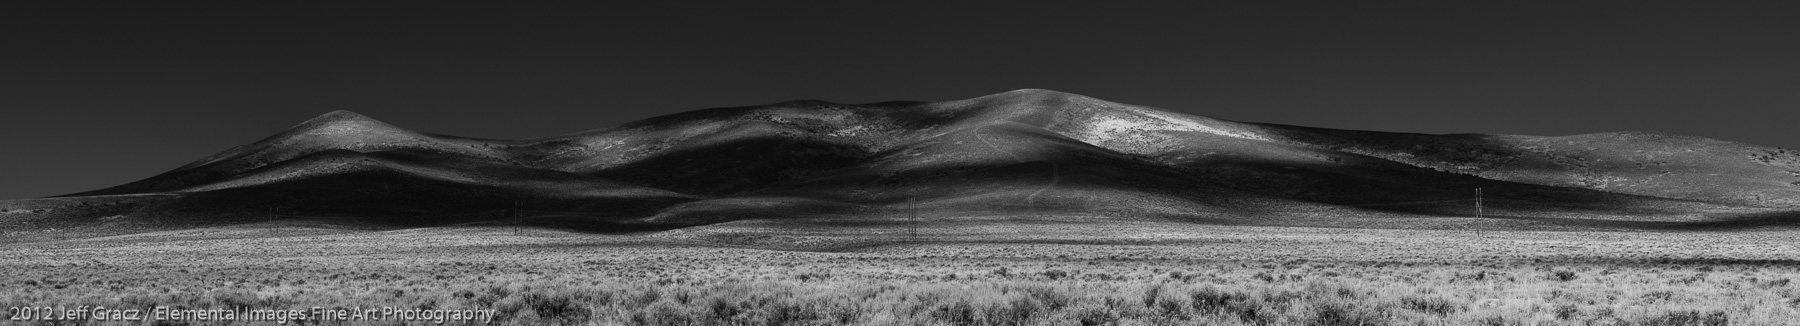 Sage Hills | Somewhere near Wells | NV | USA - © 2012 Jeff Gracz / Elemental Images Fine Art Photography - All Rights Reserved Worldwide